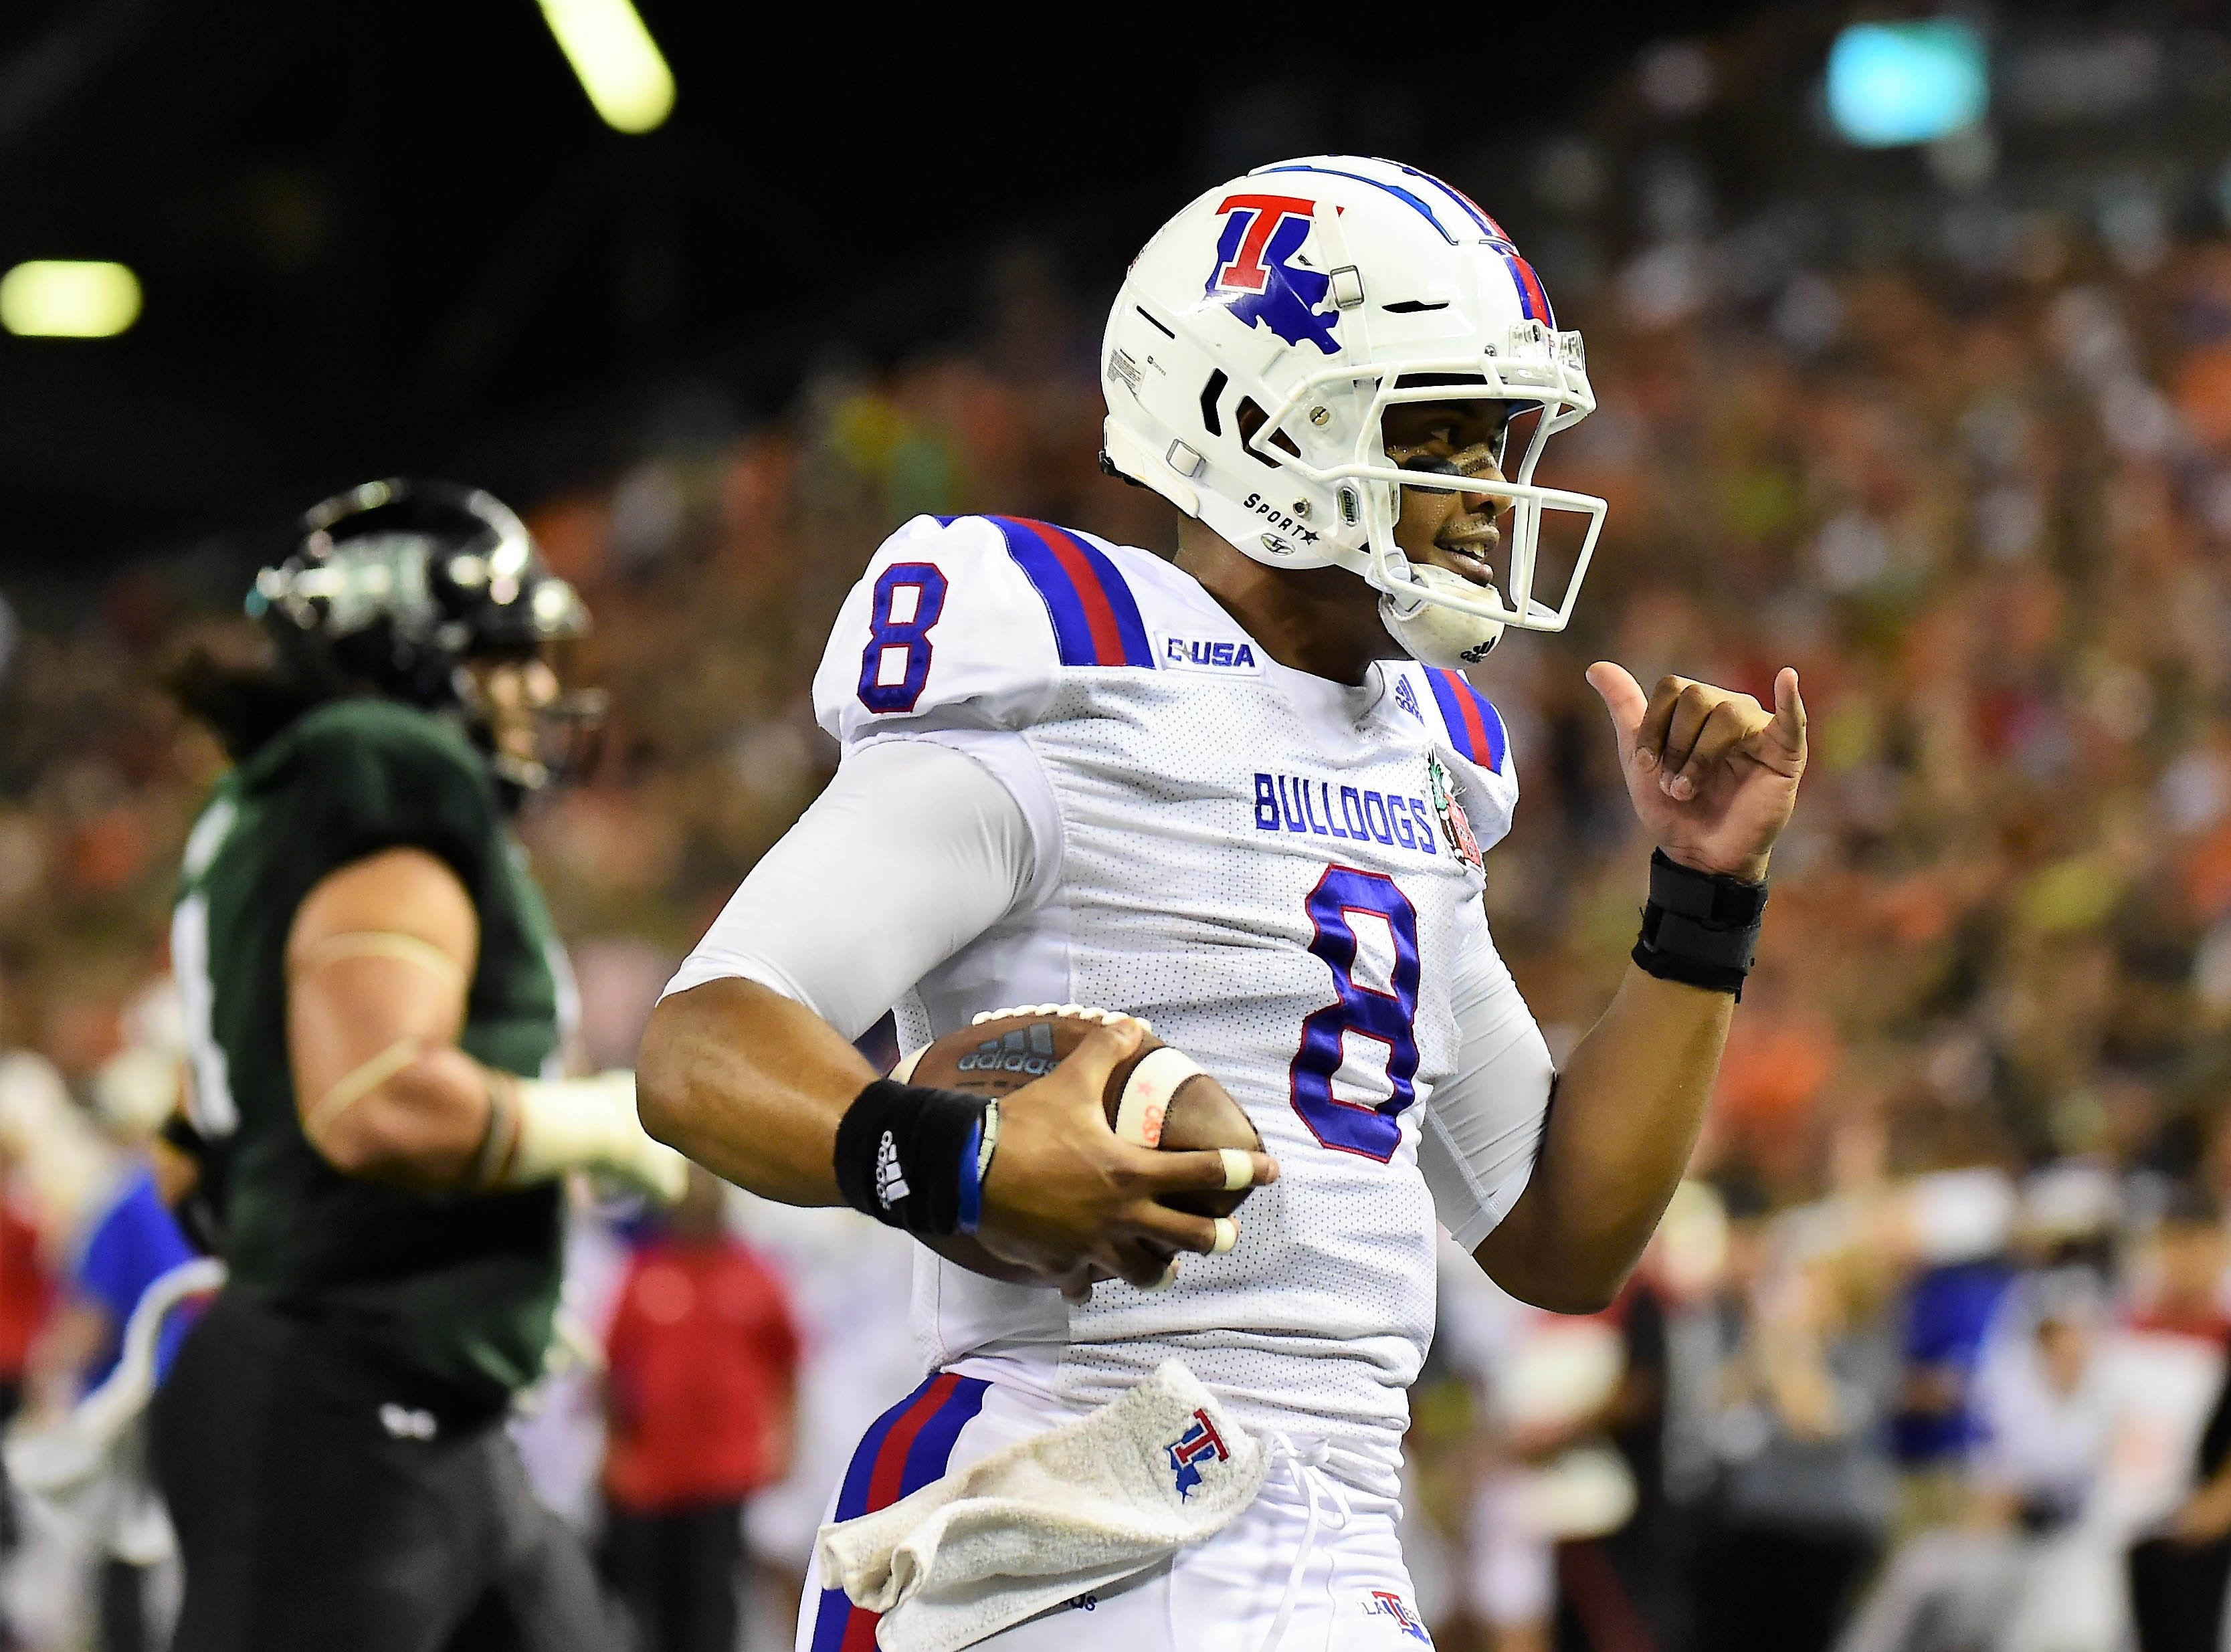 Analyzing Louisiana Tech's 2019 football schedule